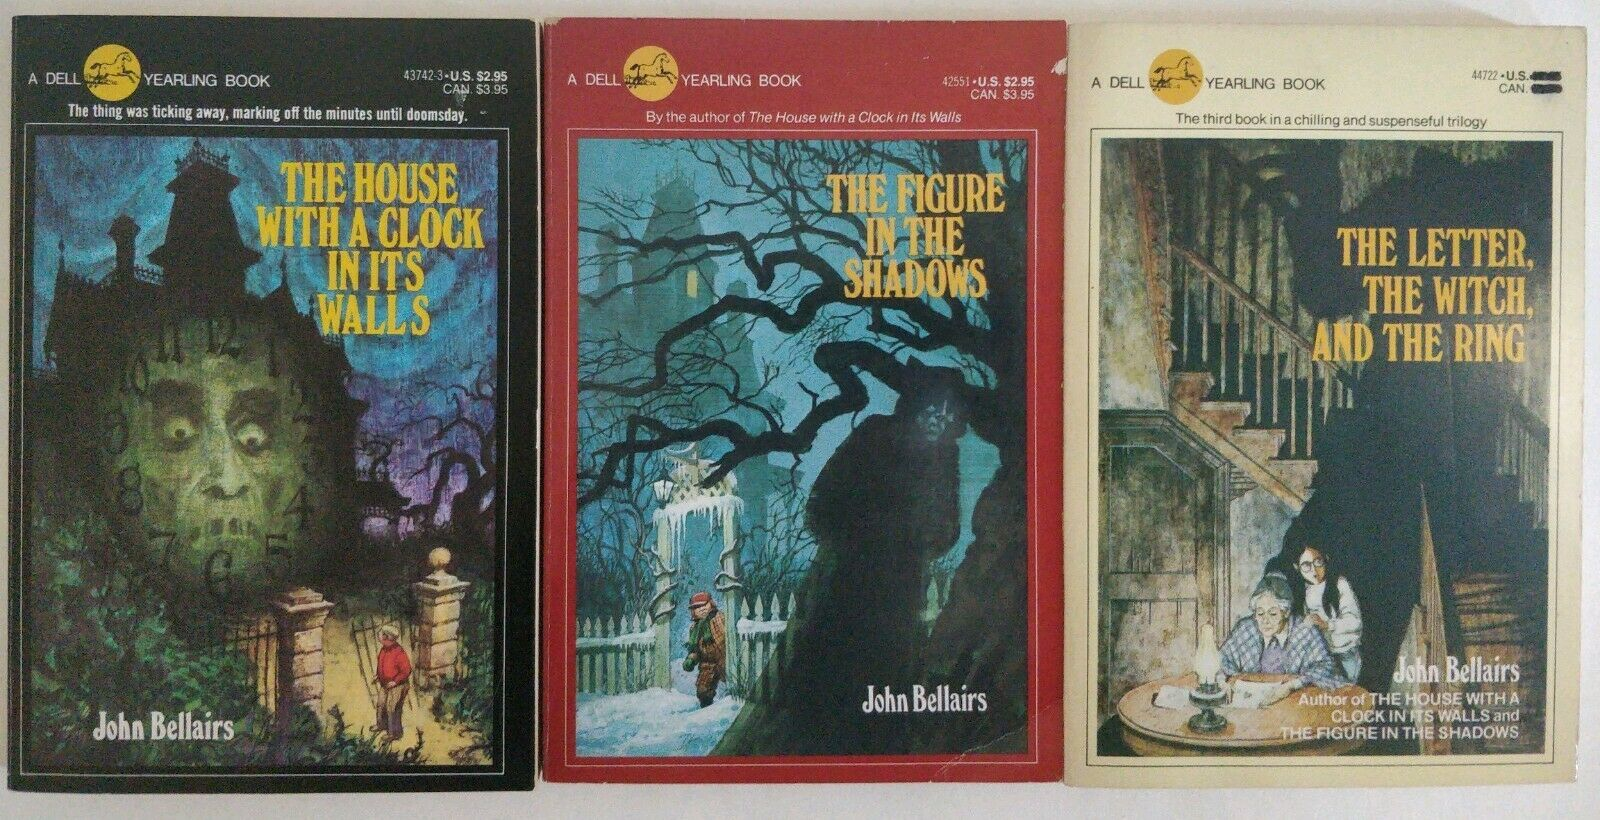 Or how about John Bellairs' books?